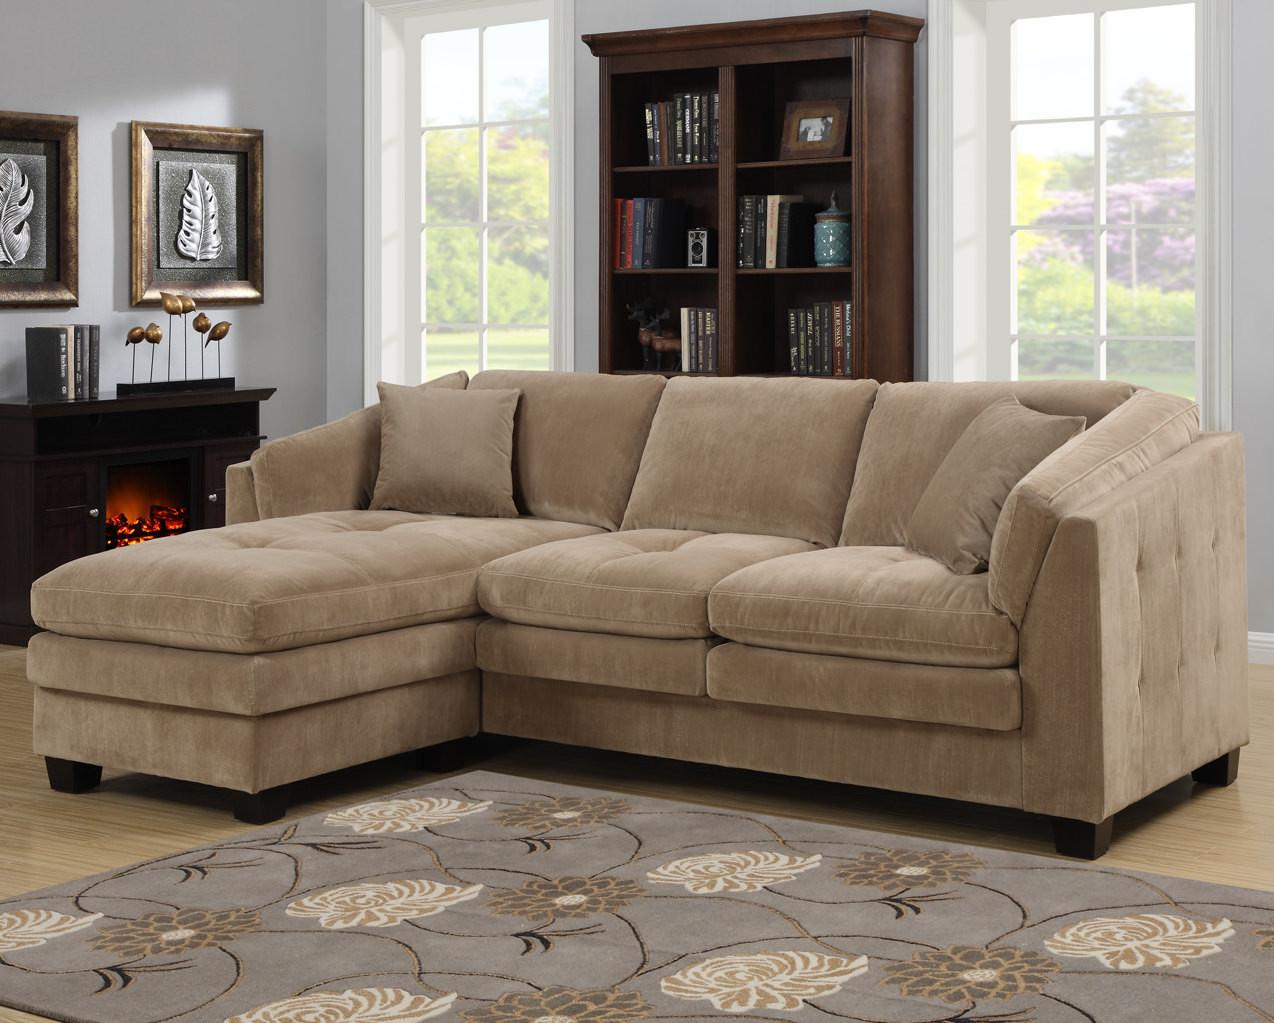 Modular Sectional Sofa Microfiber